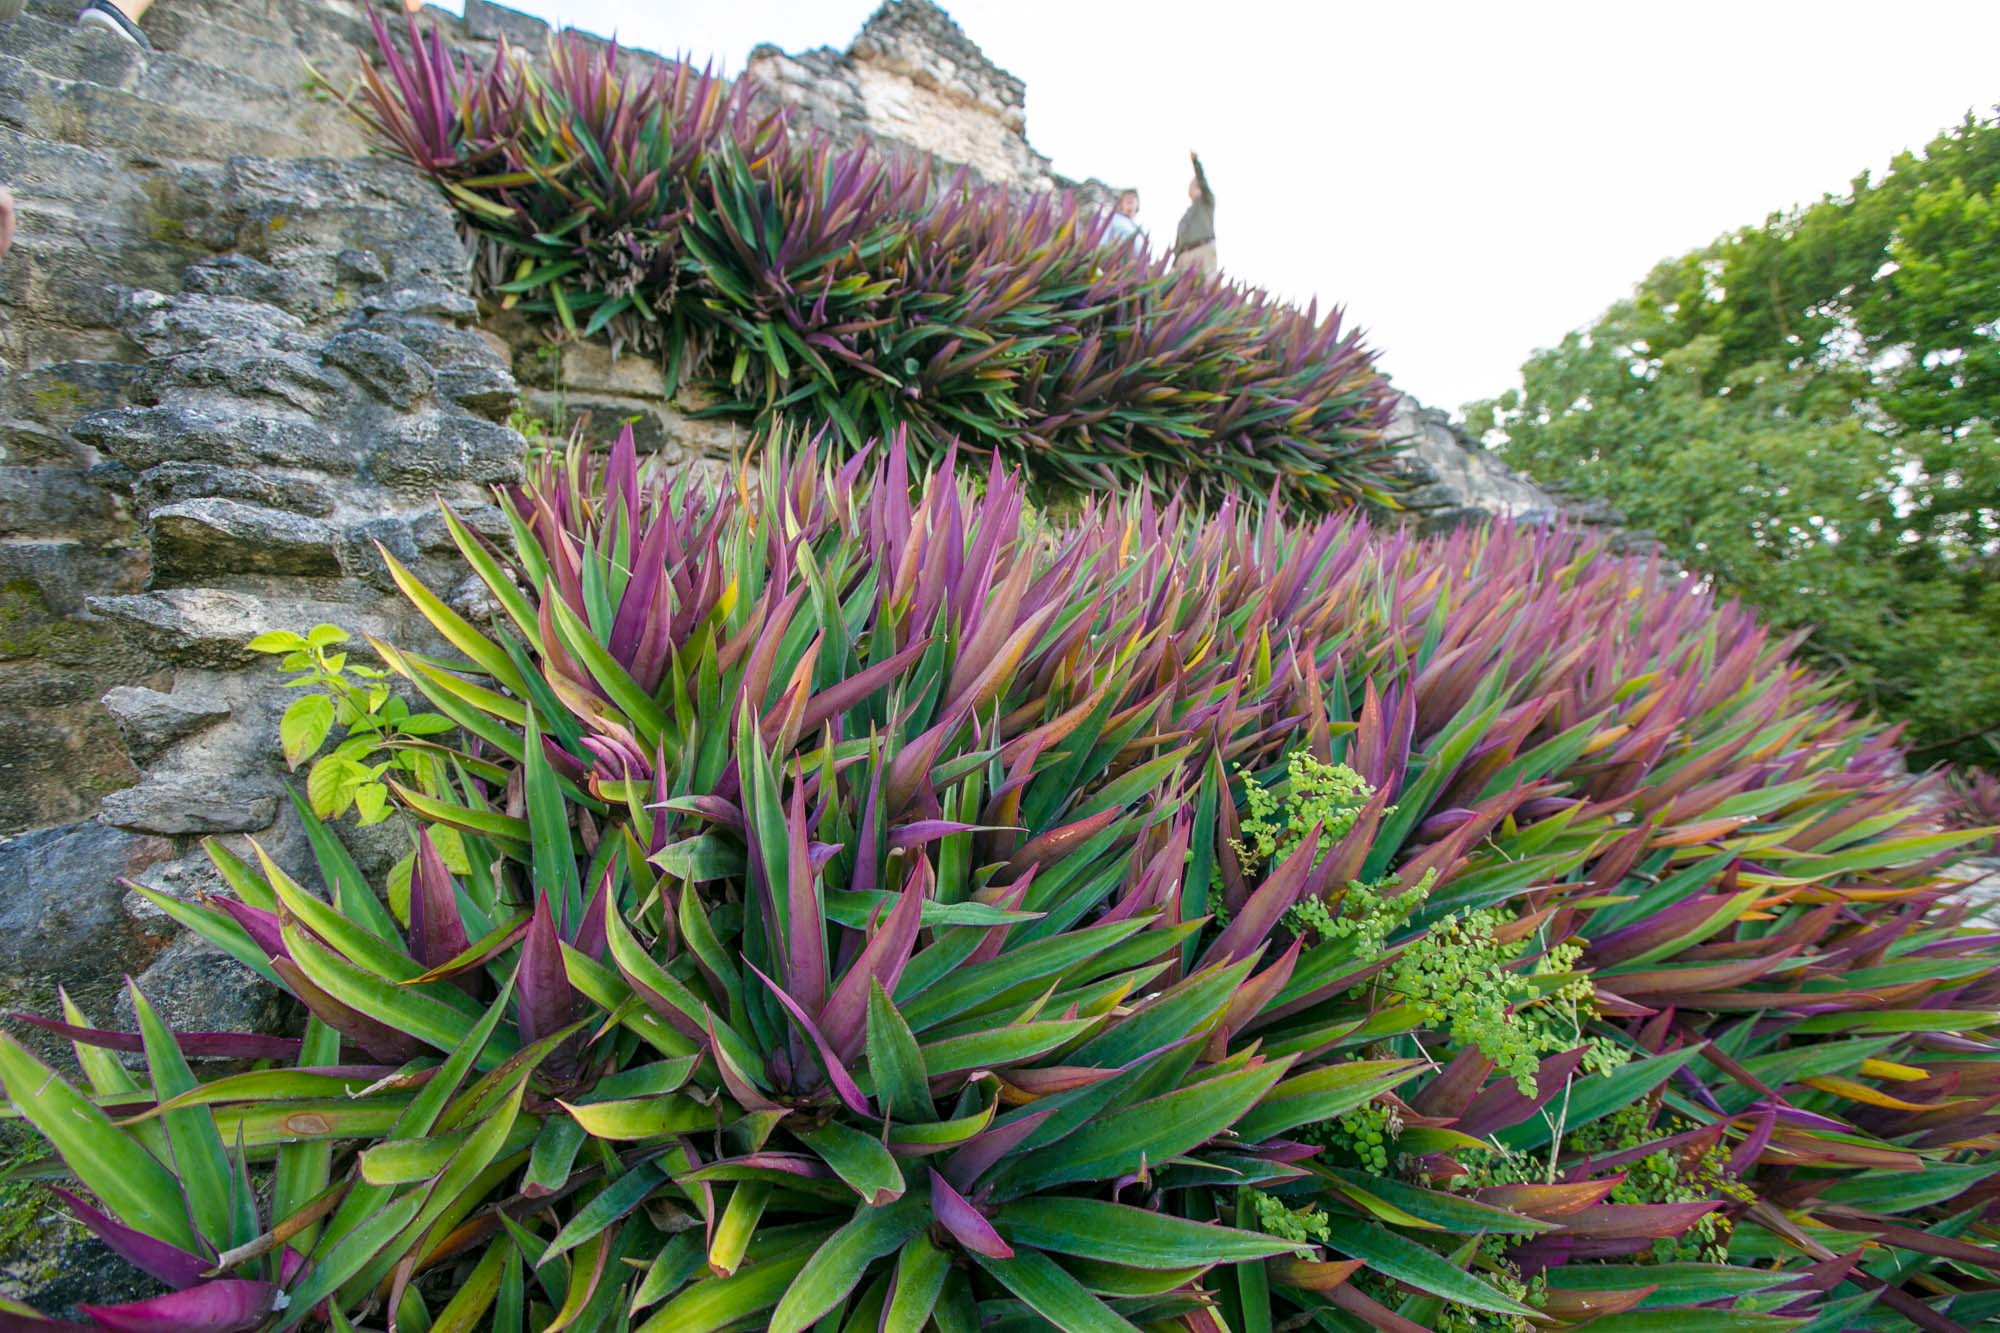 Plants on a stepped pyramid at the Mayan ruins of Dzibanche in Mexico